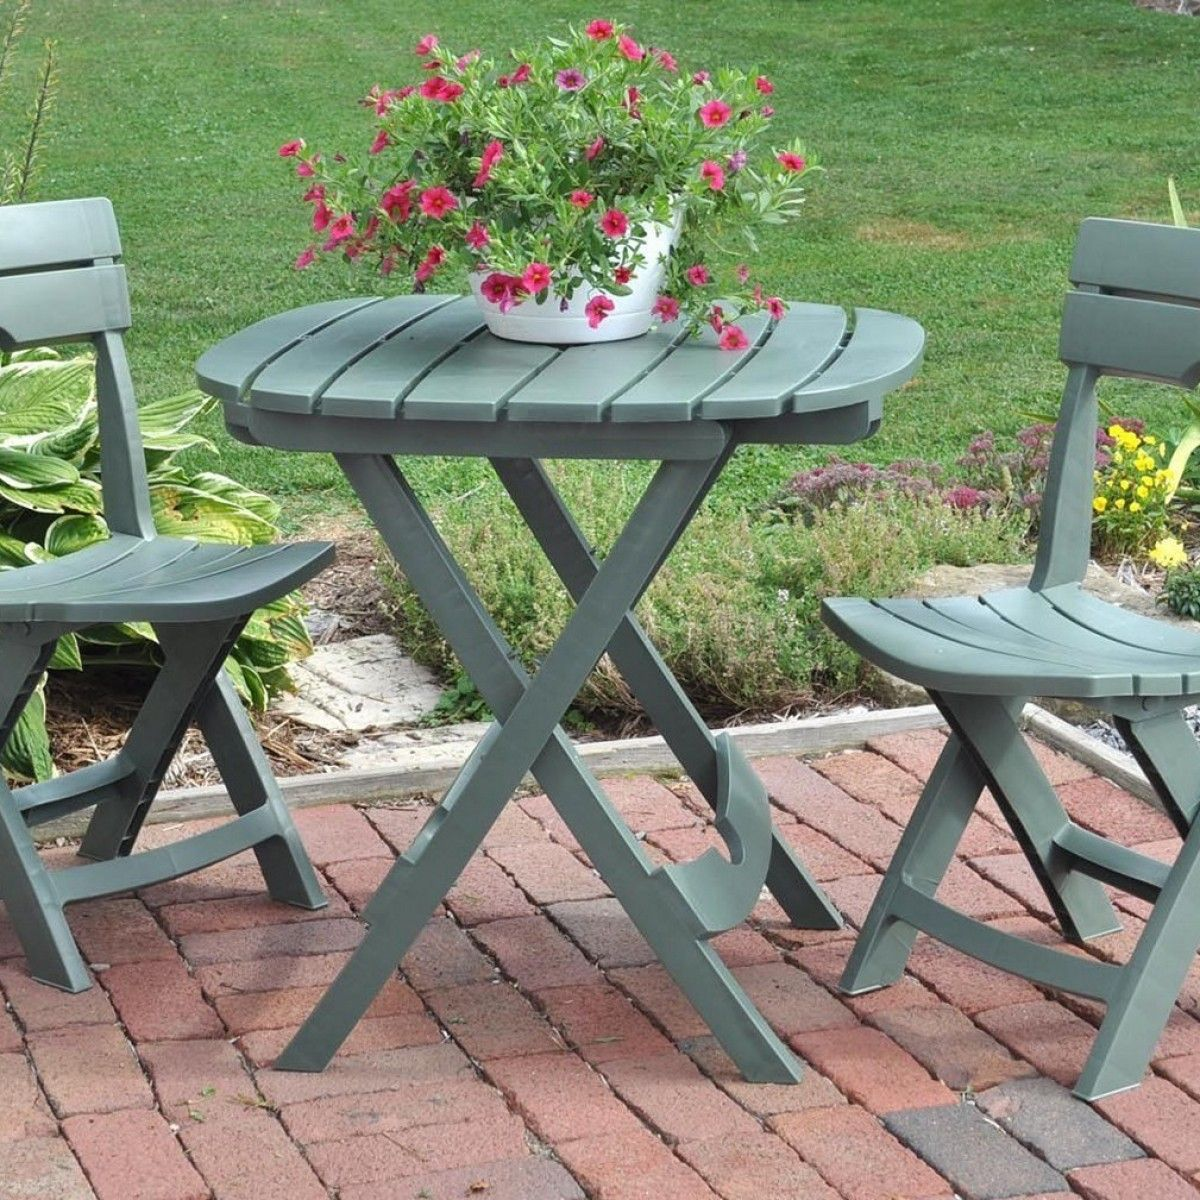 Outdoor Patio Furniture Sets Under 200 For Alluring Nuance